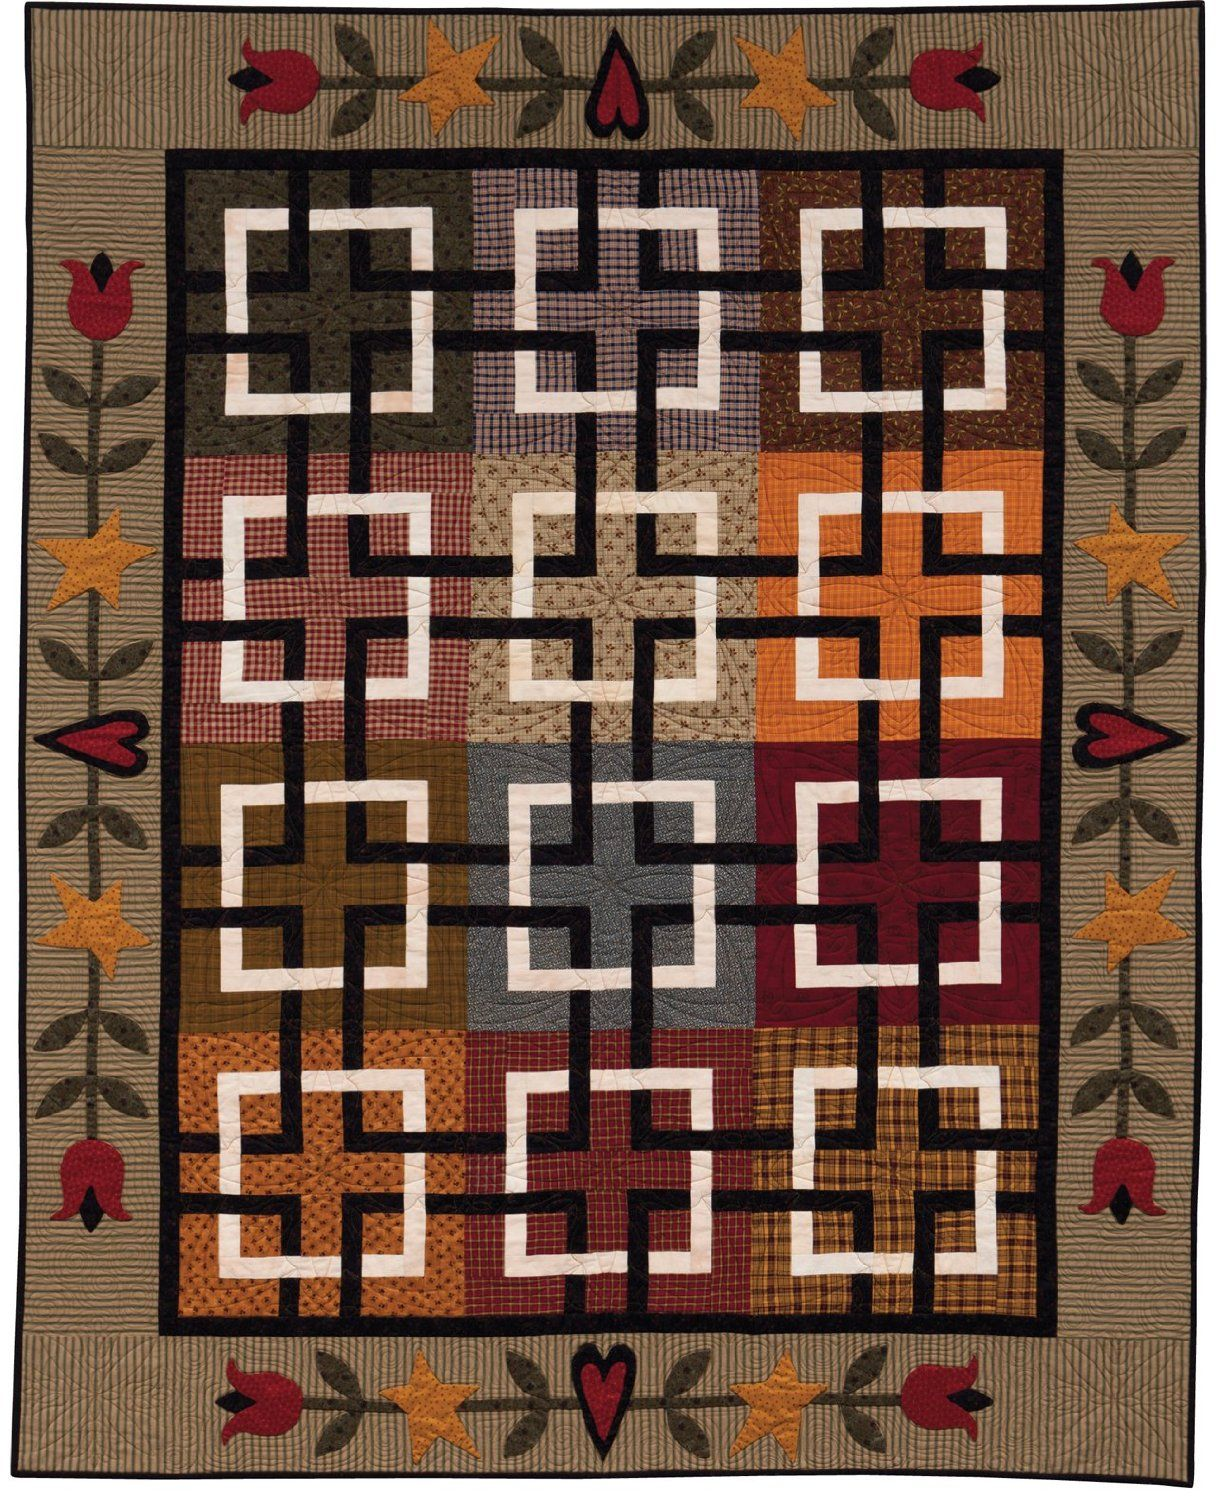 At Home with Country Quilts: 13 Patchwork Patterns (That Patchwork ... : country quilts patterns - Adamdwight.com